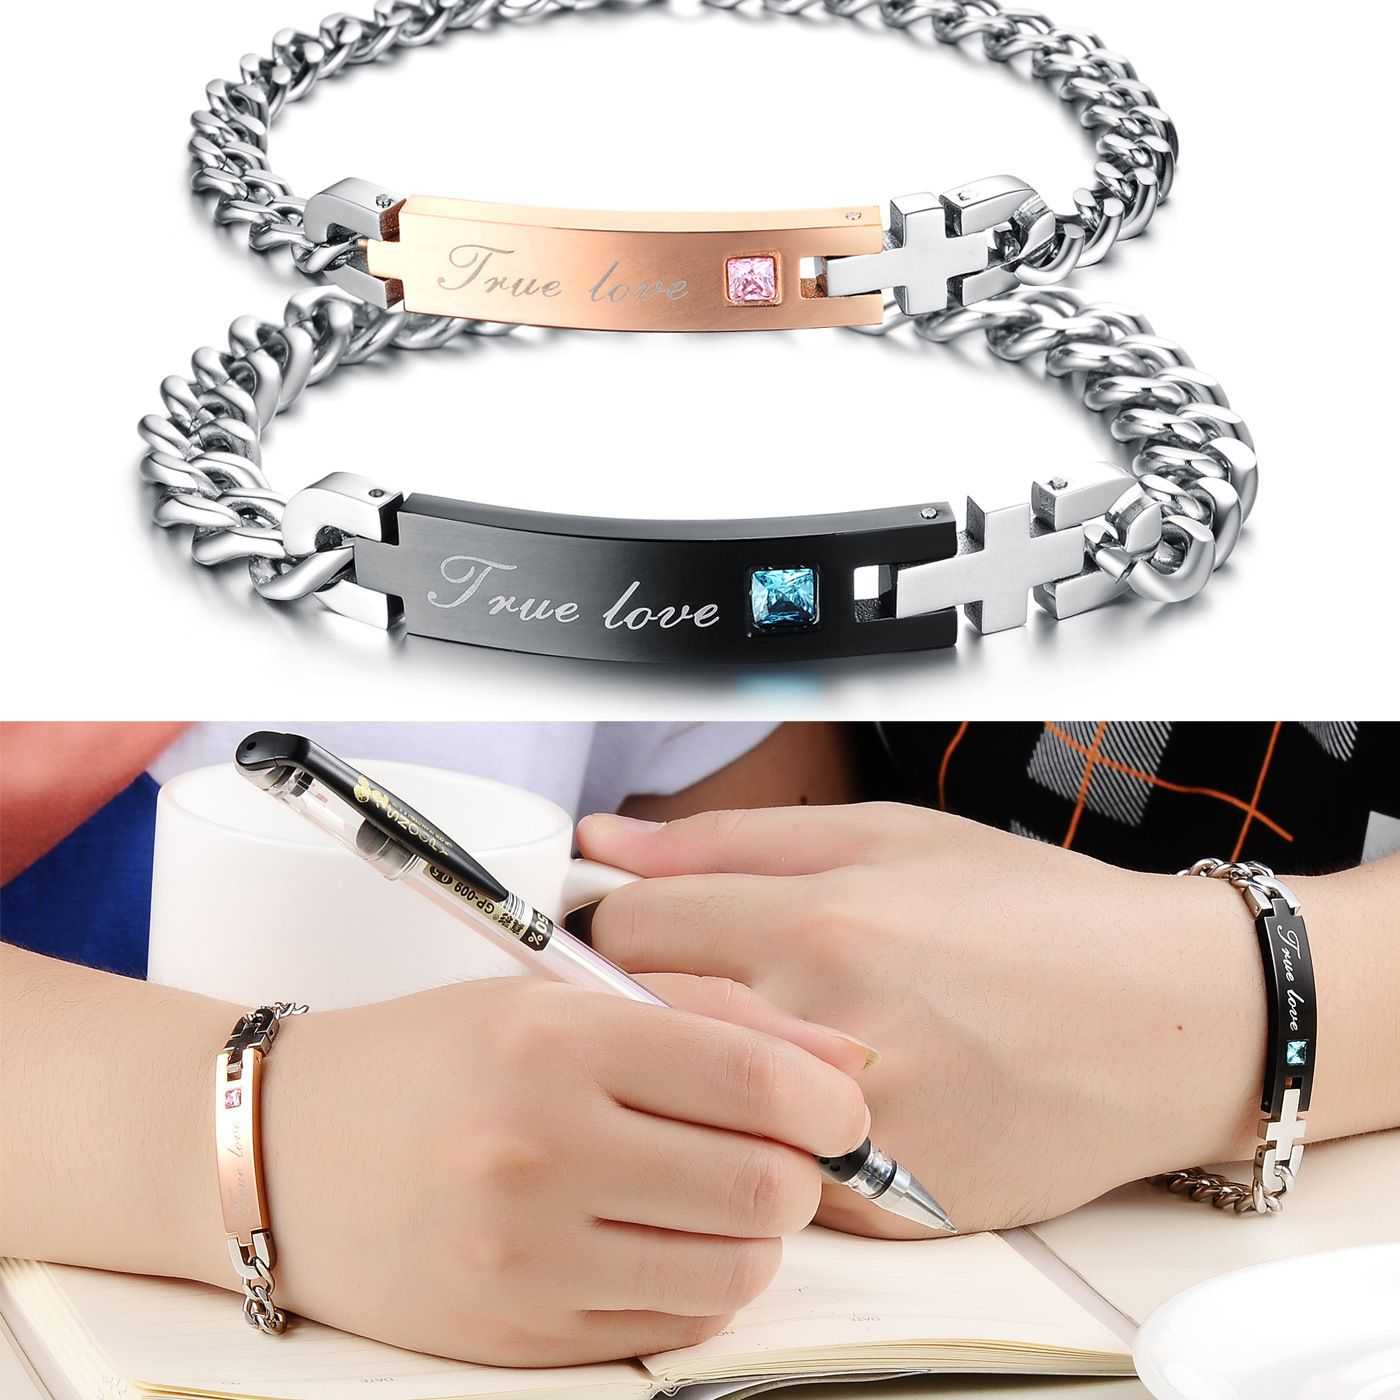 Amazon.com: 316L Stainless Steel Bracelet With Round